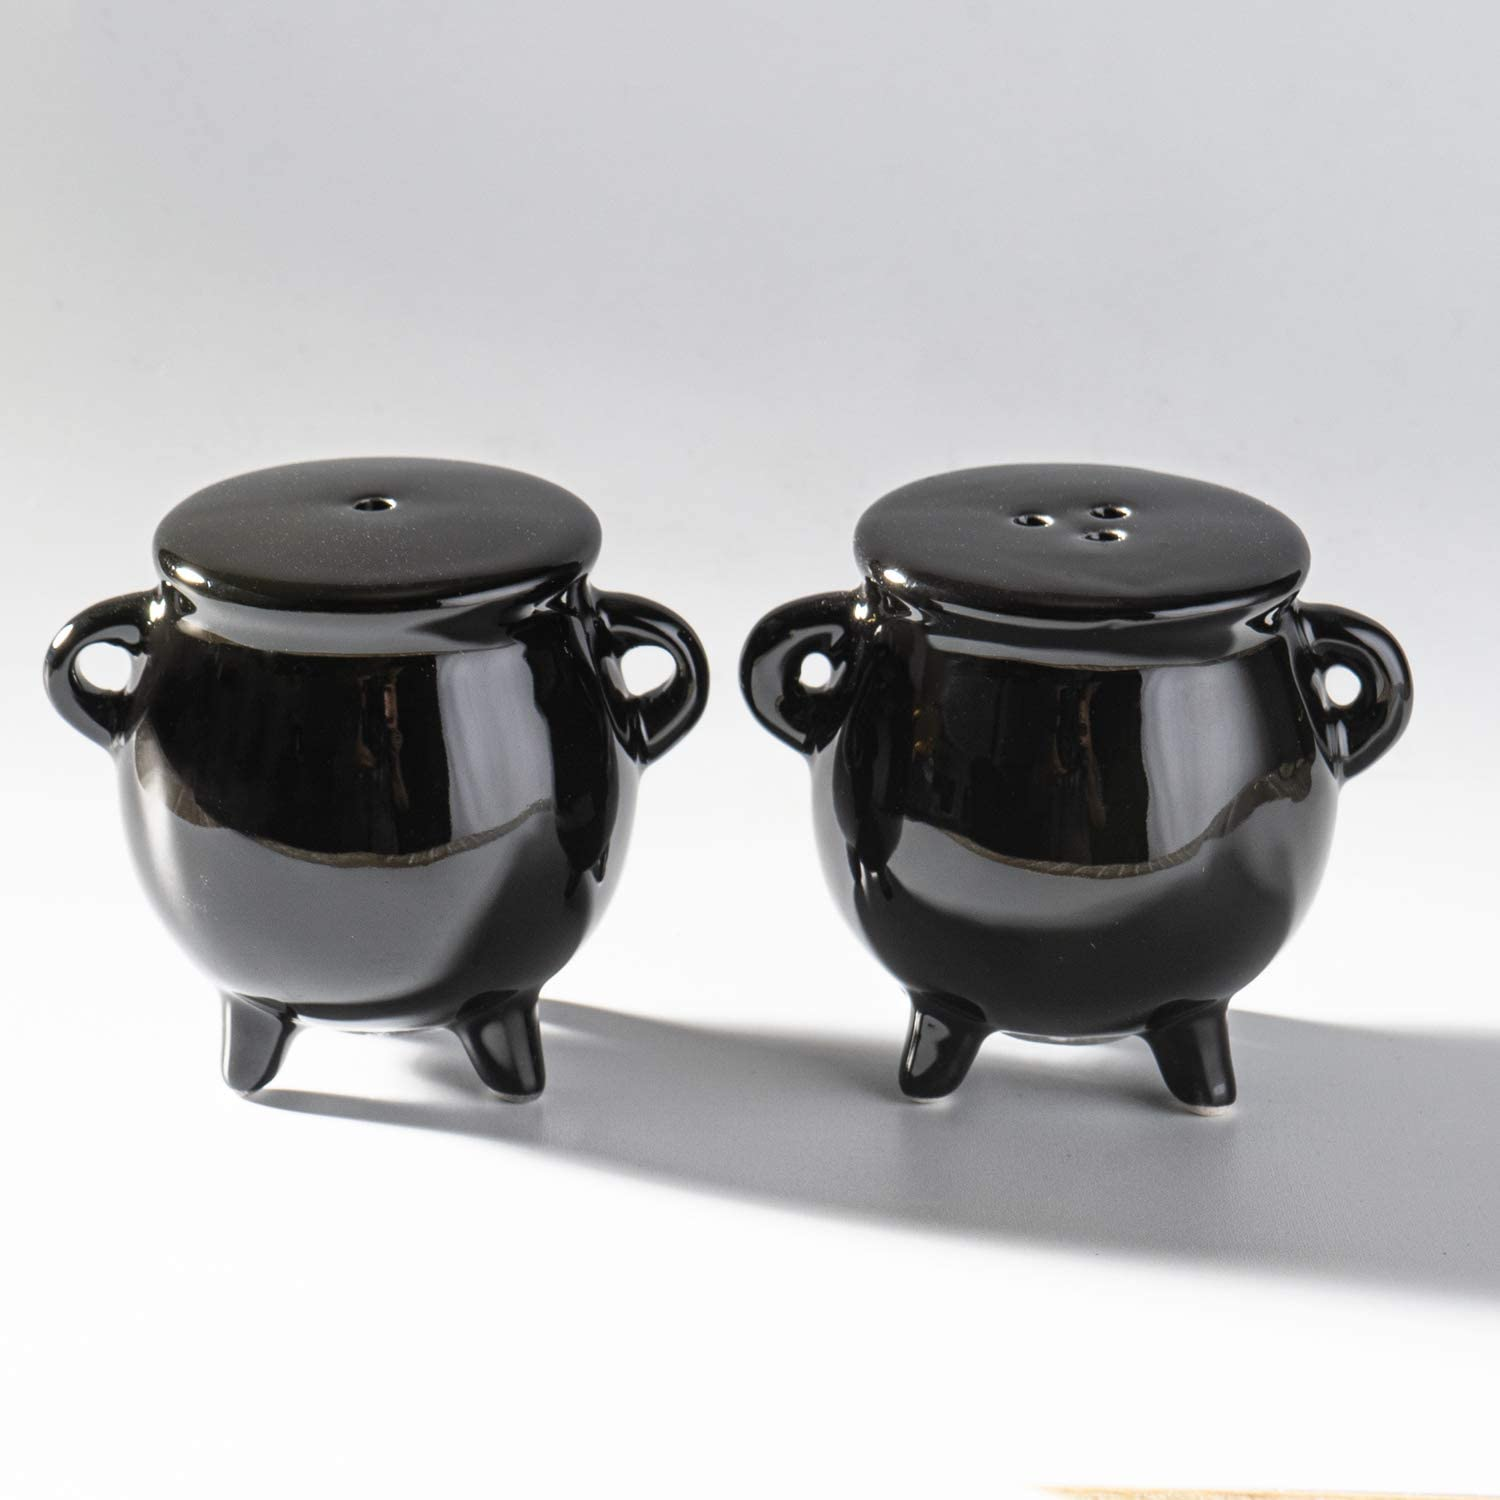 Summit Collection Witches Cauldron Black Magic Spell Potion Ceramic Salt and Pepper Shaker Set 2.4 inches Tall